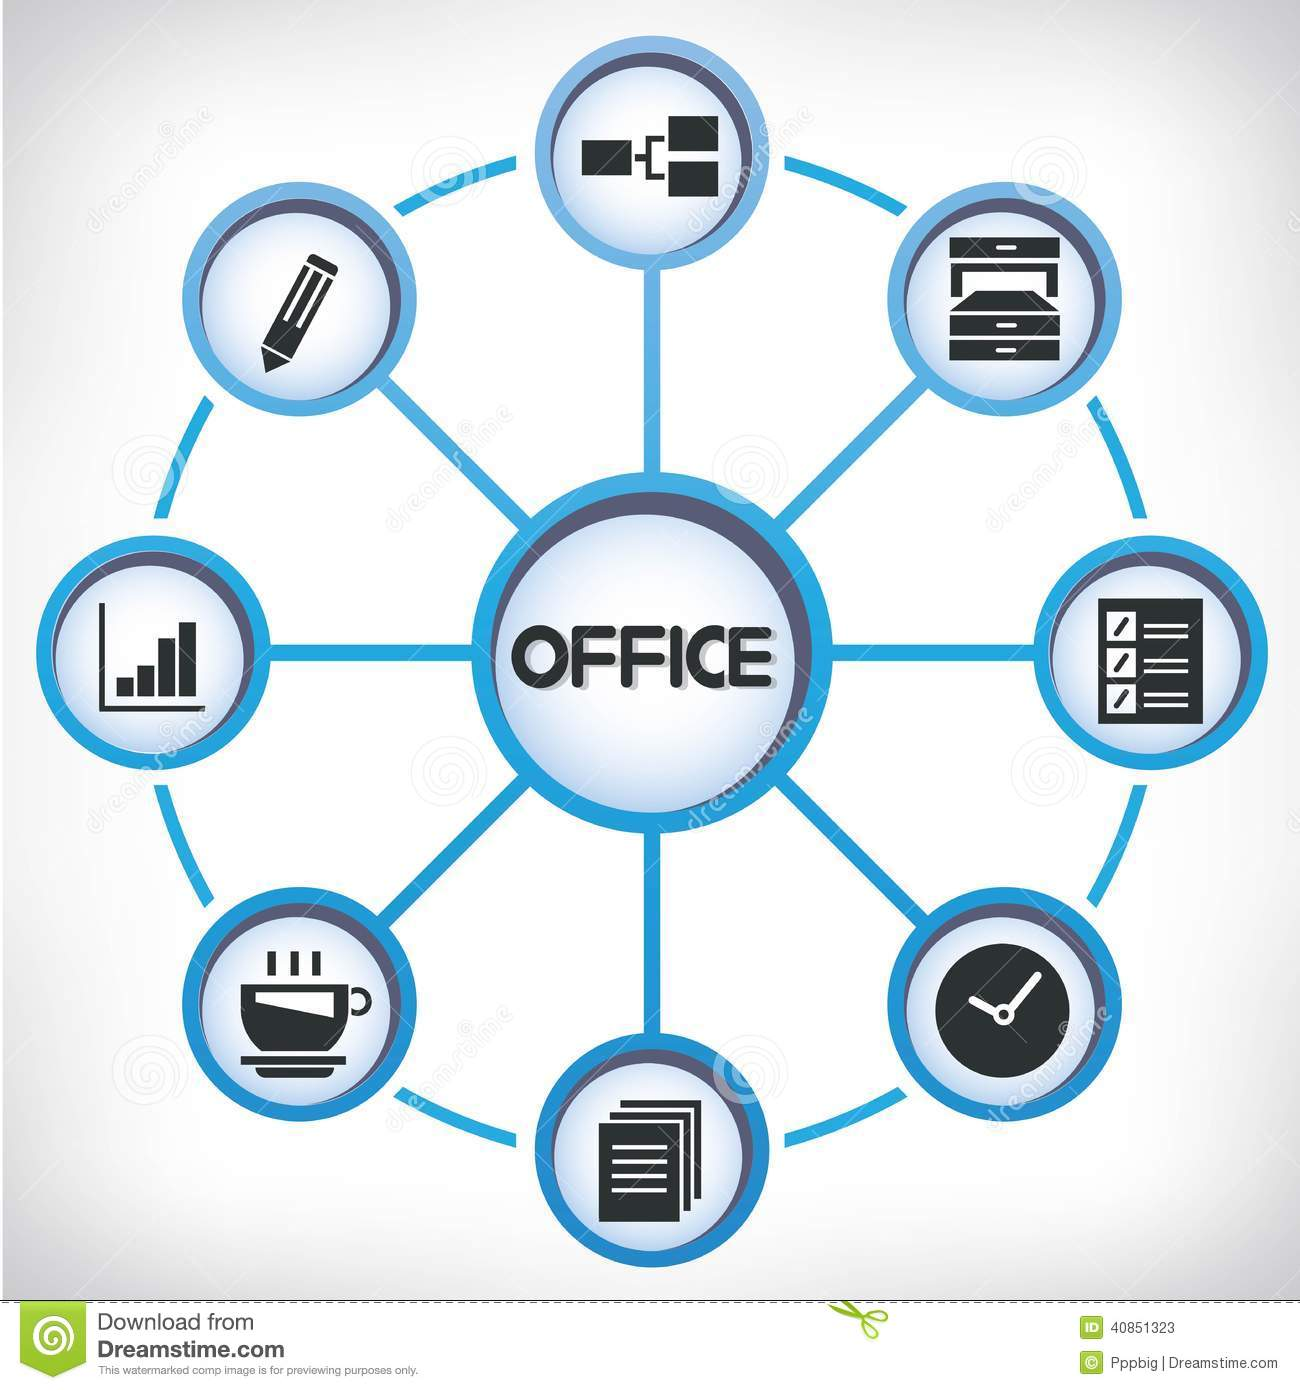 hight resolution of office network diagram stock illustration illustration of icons diagrams of office cabinets diagram of office